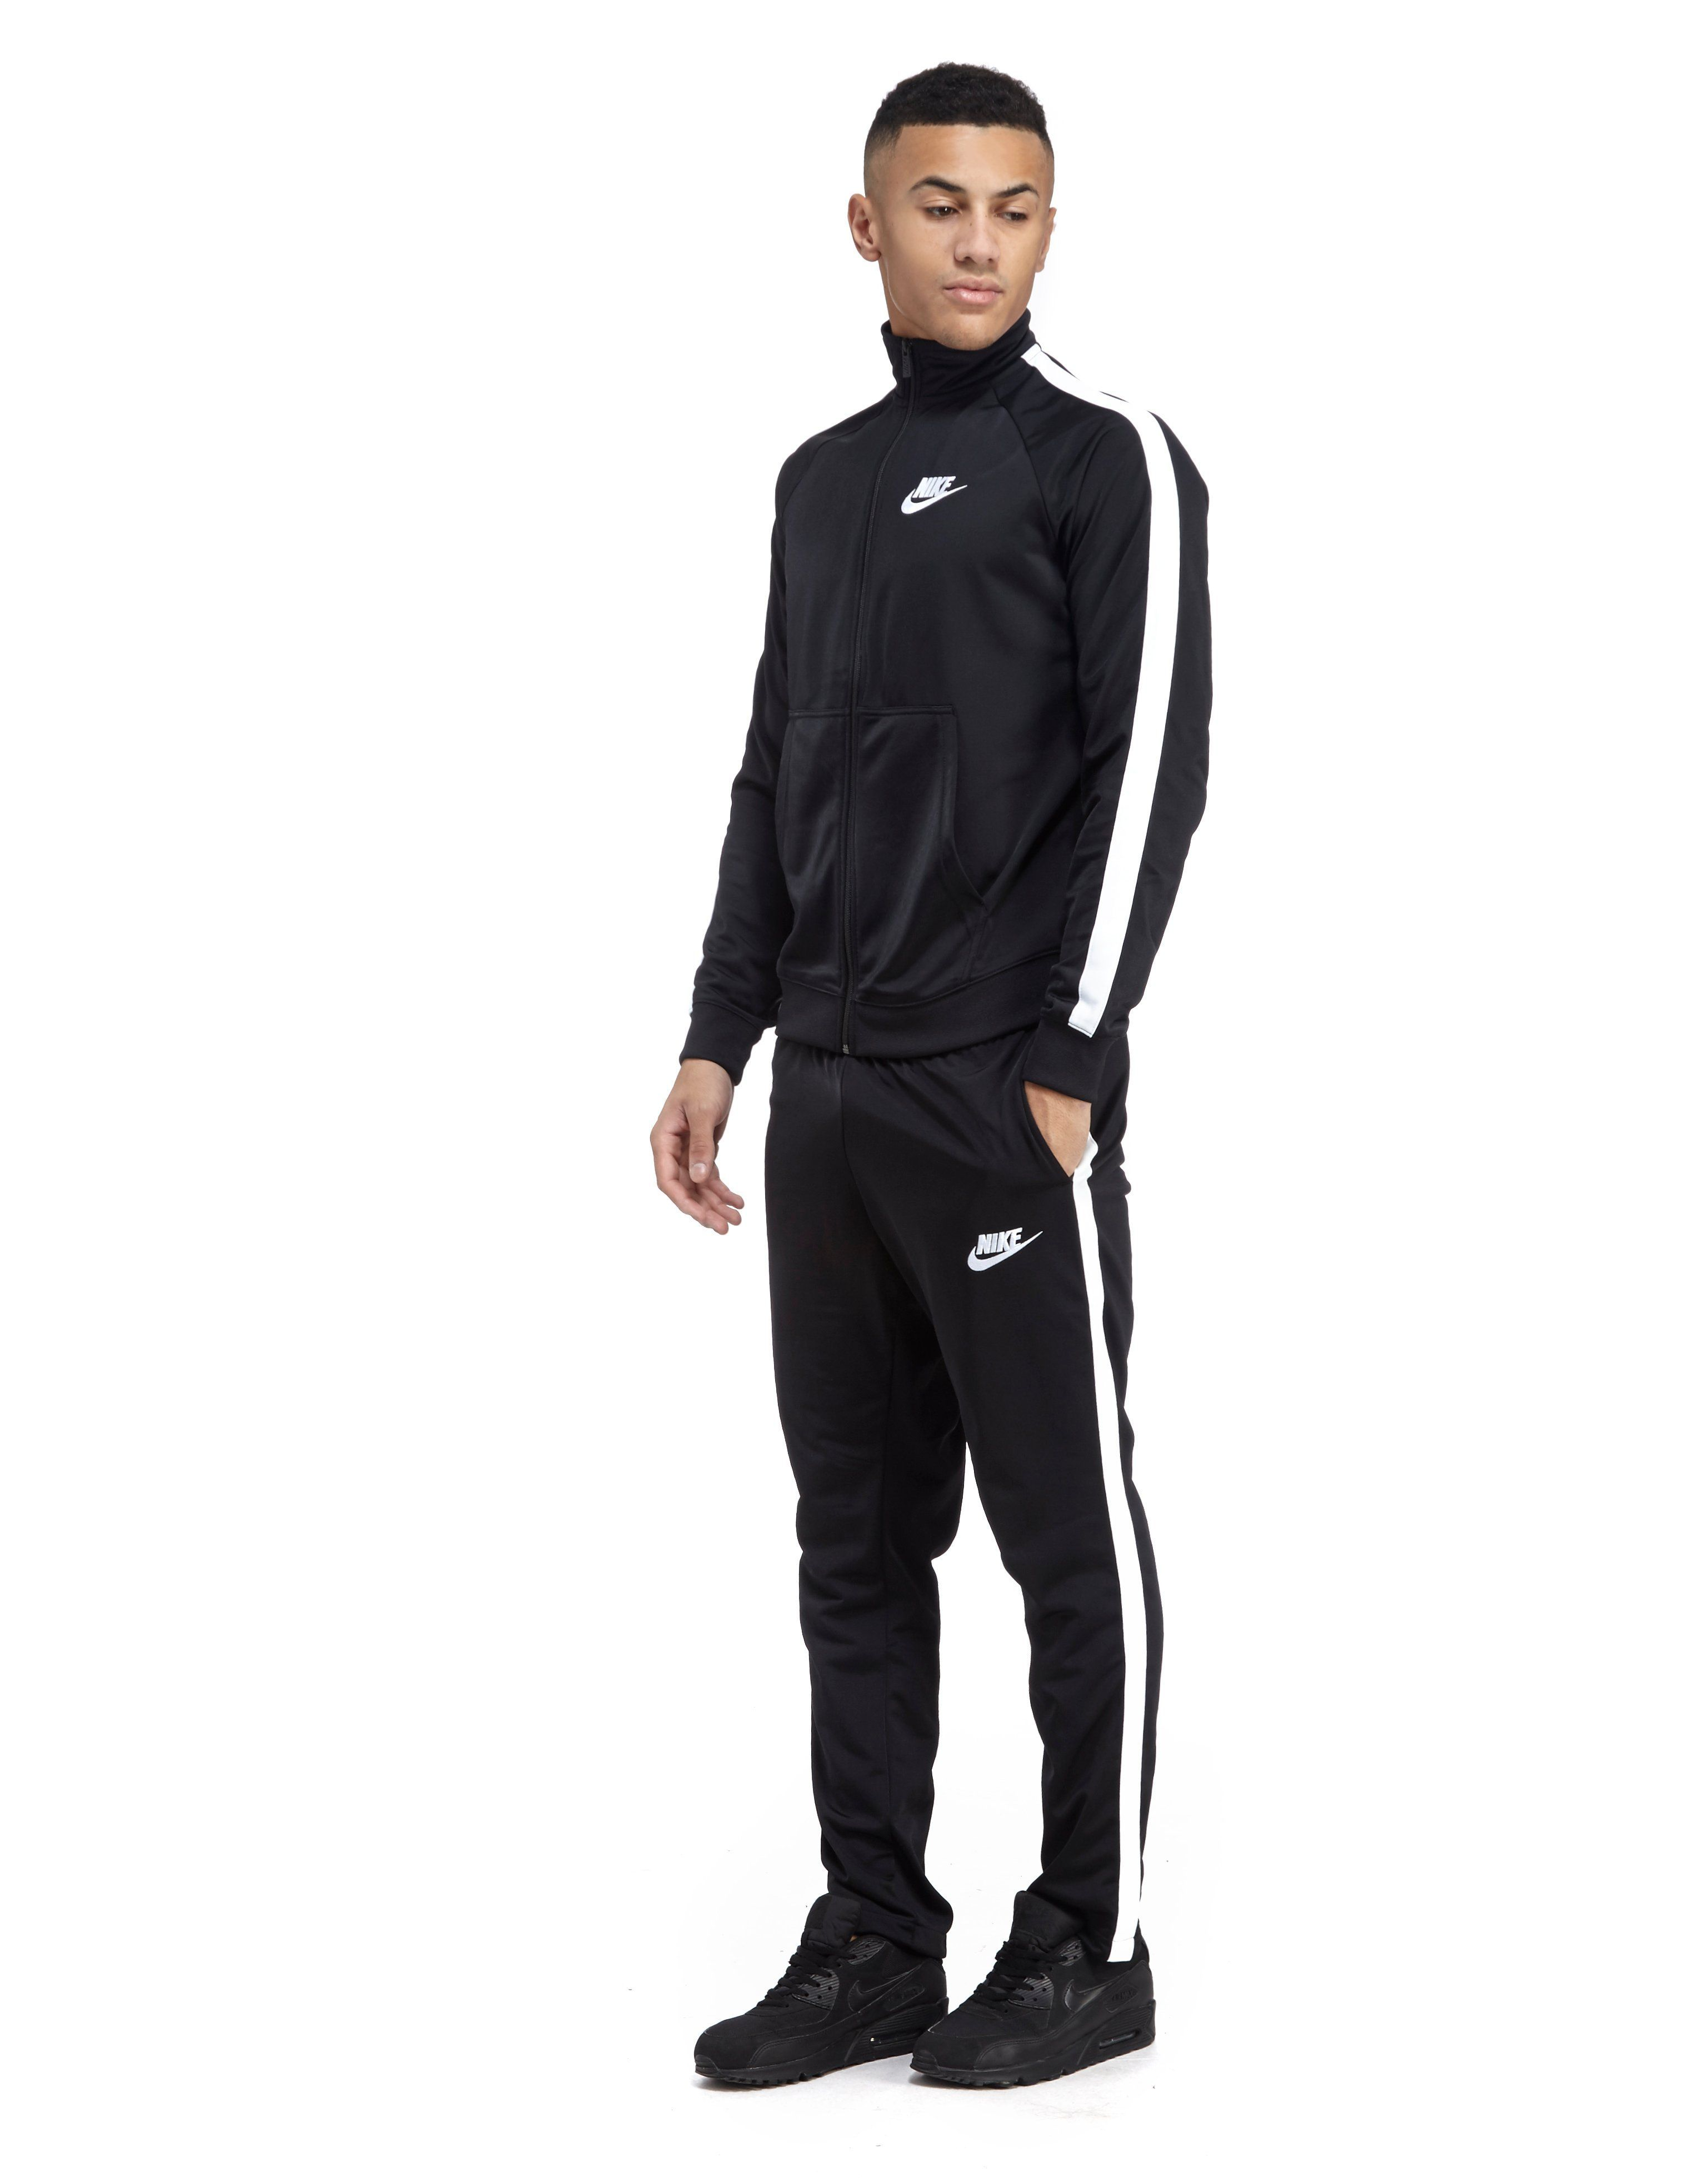 latest so cheap great prices jd_211981_a (3074×3927) in 2019 | Sport outfits, Jd sports ...